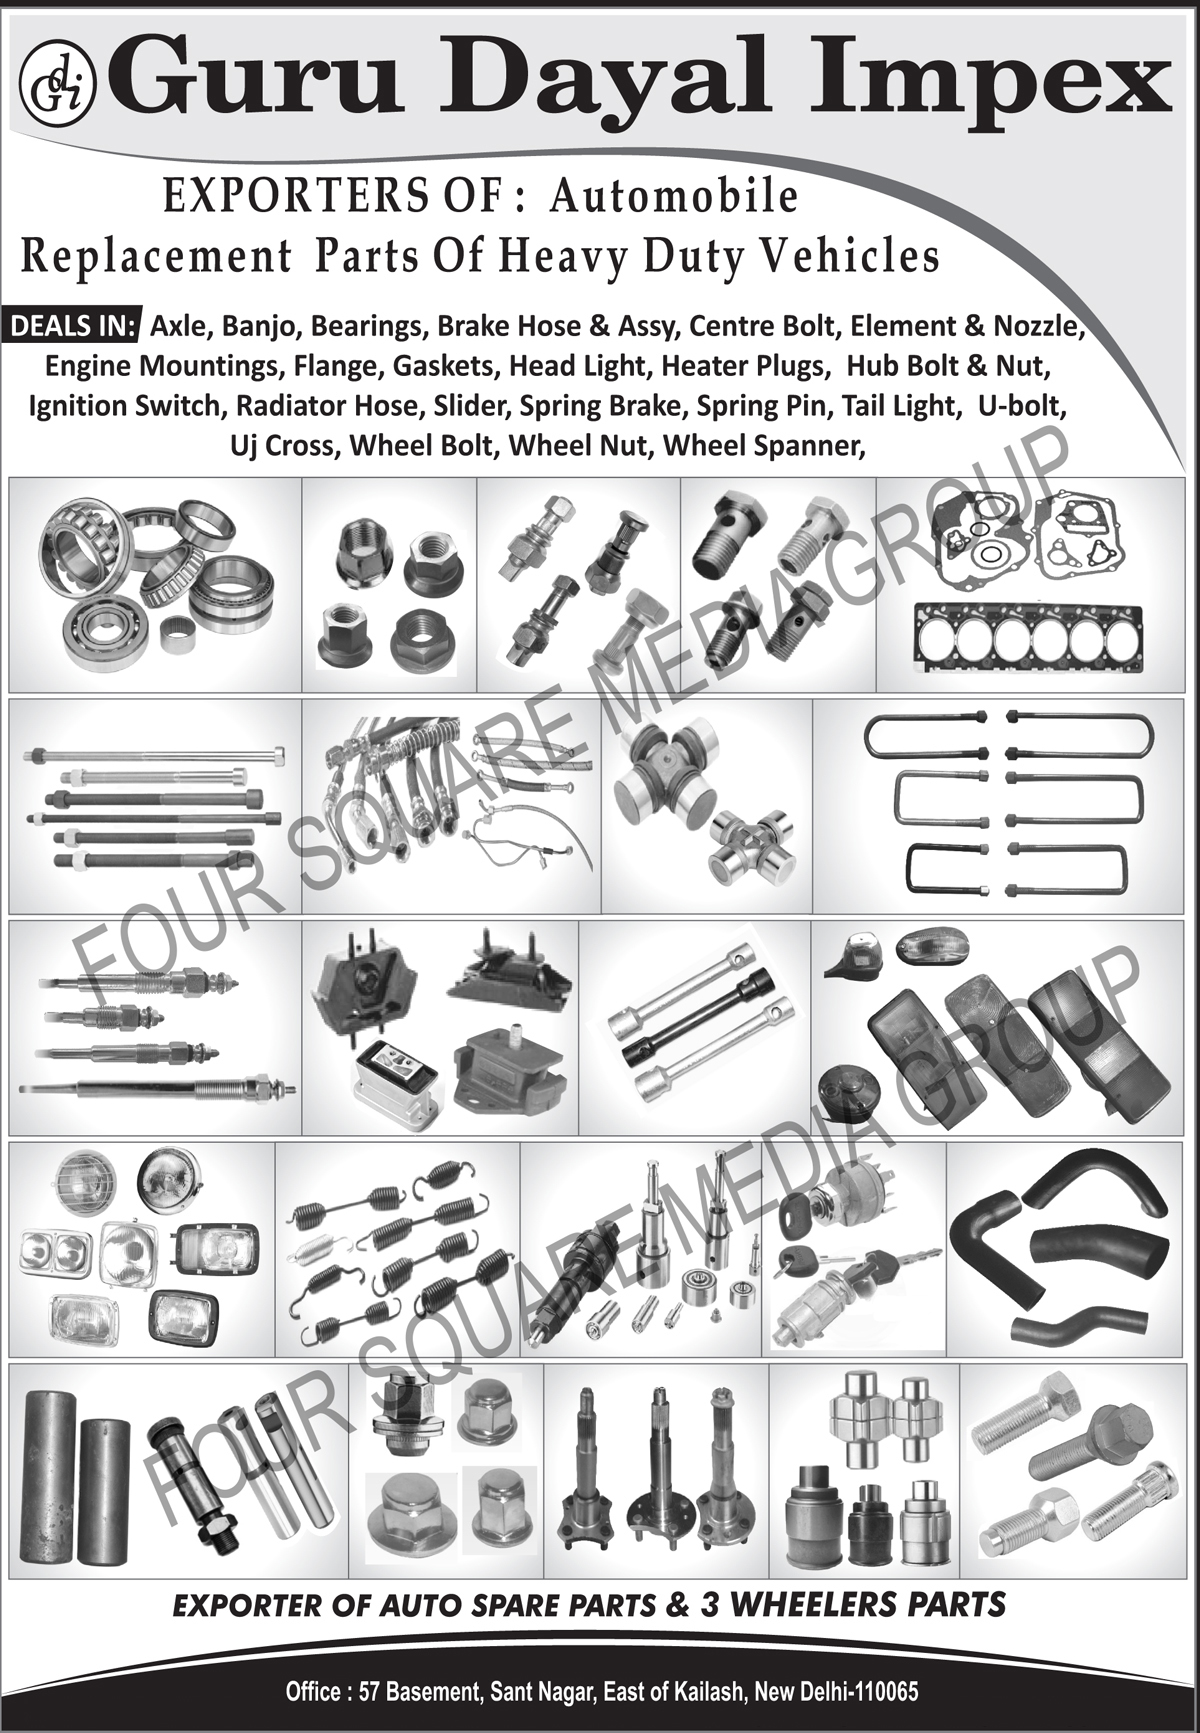 Automotive Replacement Parts, Automotive Bearings, Automotive Wheel Bolt, Automotive Wheel Nut, Automotive Banjo Bolts, Automotive U Bolt, Automotive Centre Bolt, Automotive Brake Hose, Automotive Assemblies, Gaskets, Automotive Heater Plugs, Automotive Engine Mountings, Automotive Tail Lights, Automotive Head Lights, Automotive Spring Brakes, Automotive Element, Automotive Nozzles, Automotive Radiator Hose, Automotive Spring Pins, Three Wheeler Automotive Parts, Three Wheeler Axles, Three Wheeler Flange, Three Wheeler Slider, Three Wheeler Bearings, Three Wheeler Gaskets, Three Wheeler Tail Lights, Three Wheeler Parts, Automotive Spare Parts,Bearing, U Bolts, Two Wheeler Accessories, Two Wheeler Covers, Two Wheeler Seats, Two Wheeler Security Sirens, Two Wheeler Side Boxes, Two Wheeler Tank Bags, Automotive Horns, Automotive Mirrors, Motorcycle Components, Three Wheeler Spare parts, Automotive Axles, Automotive Banjo, Automotive Flanges, Automotive Hub Bolts, Automotive Nuts, Automotive Ignition Switches, Automotive Sliders, UJ Crosses, Universal Joint Crosses, Wheel Spanners